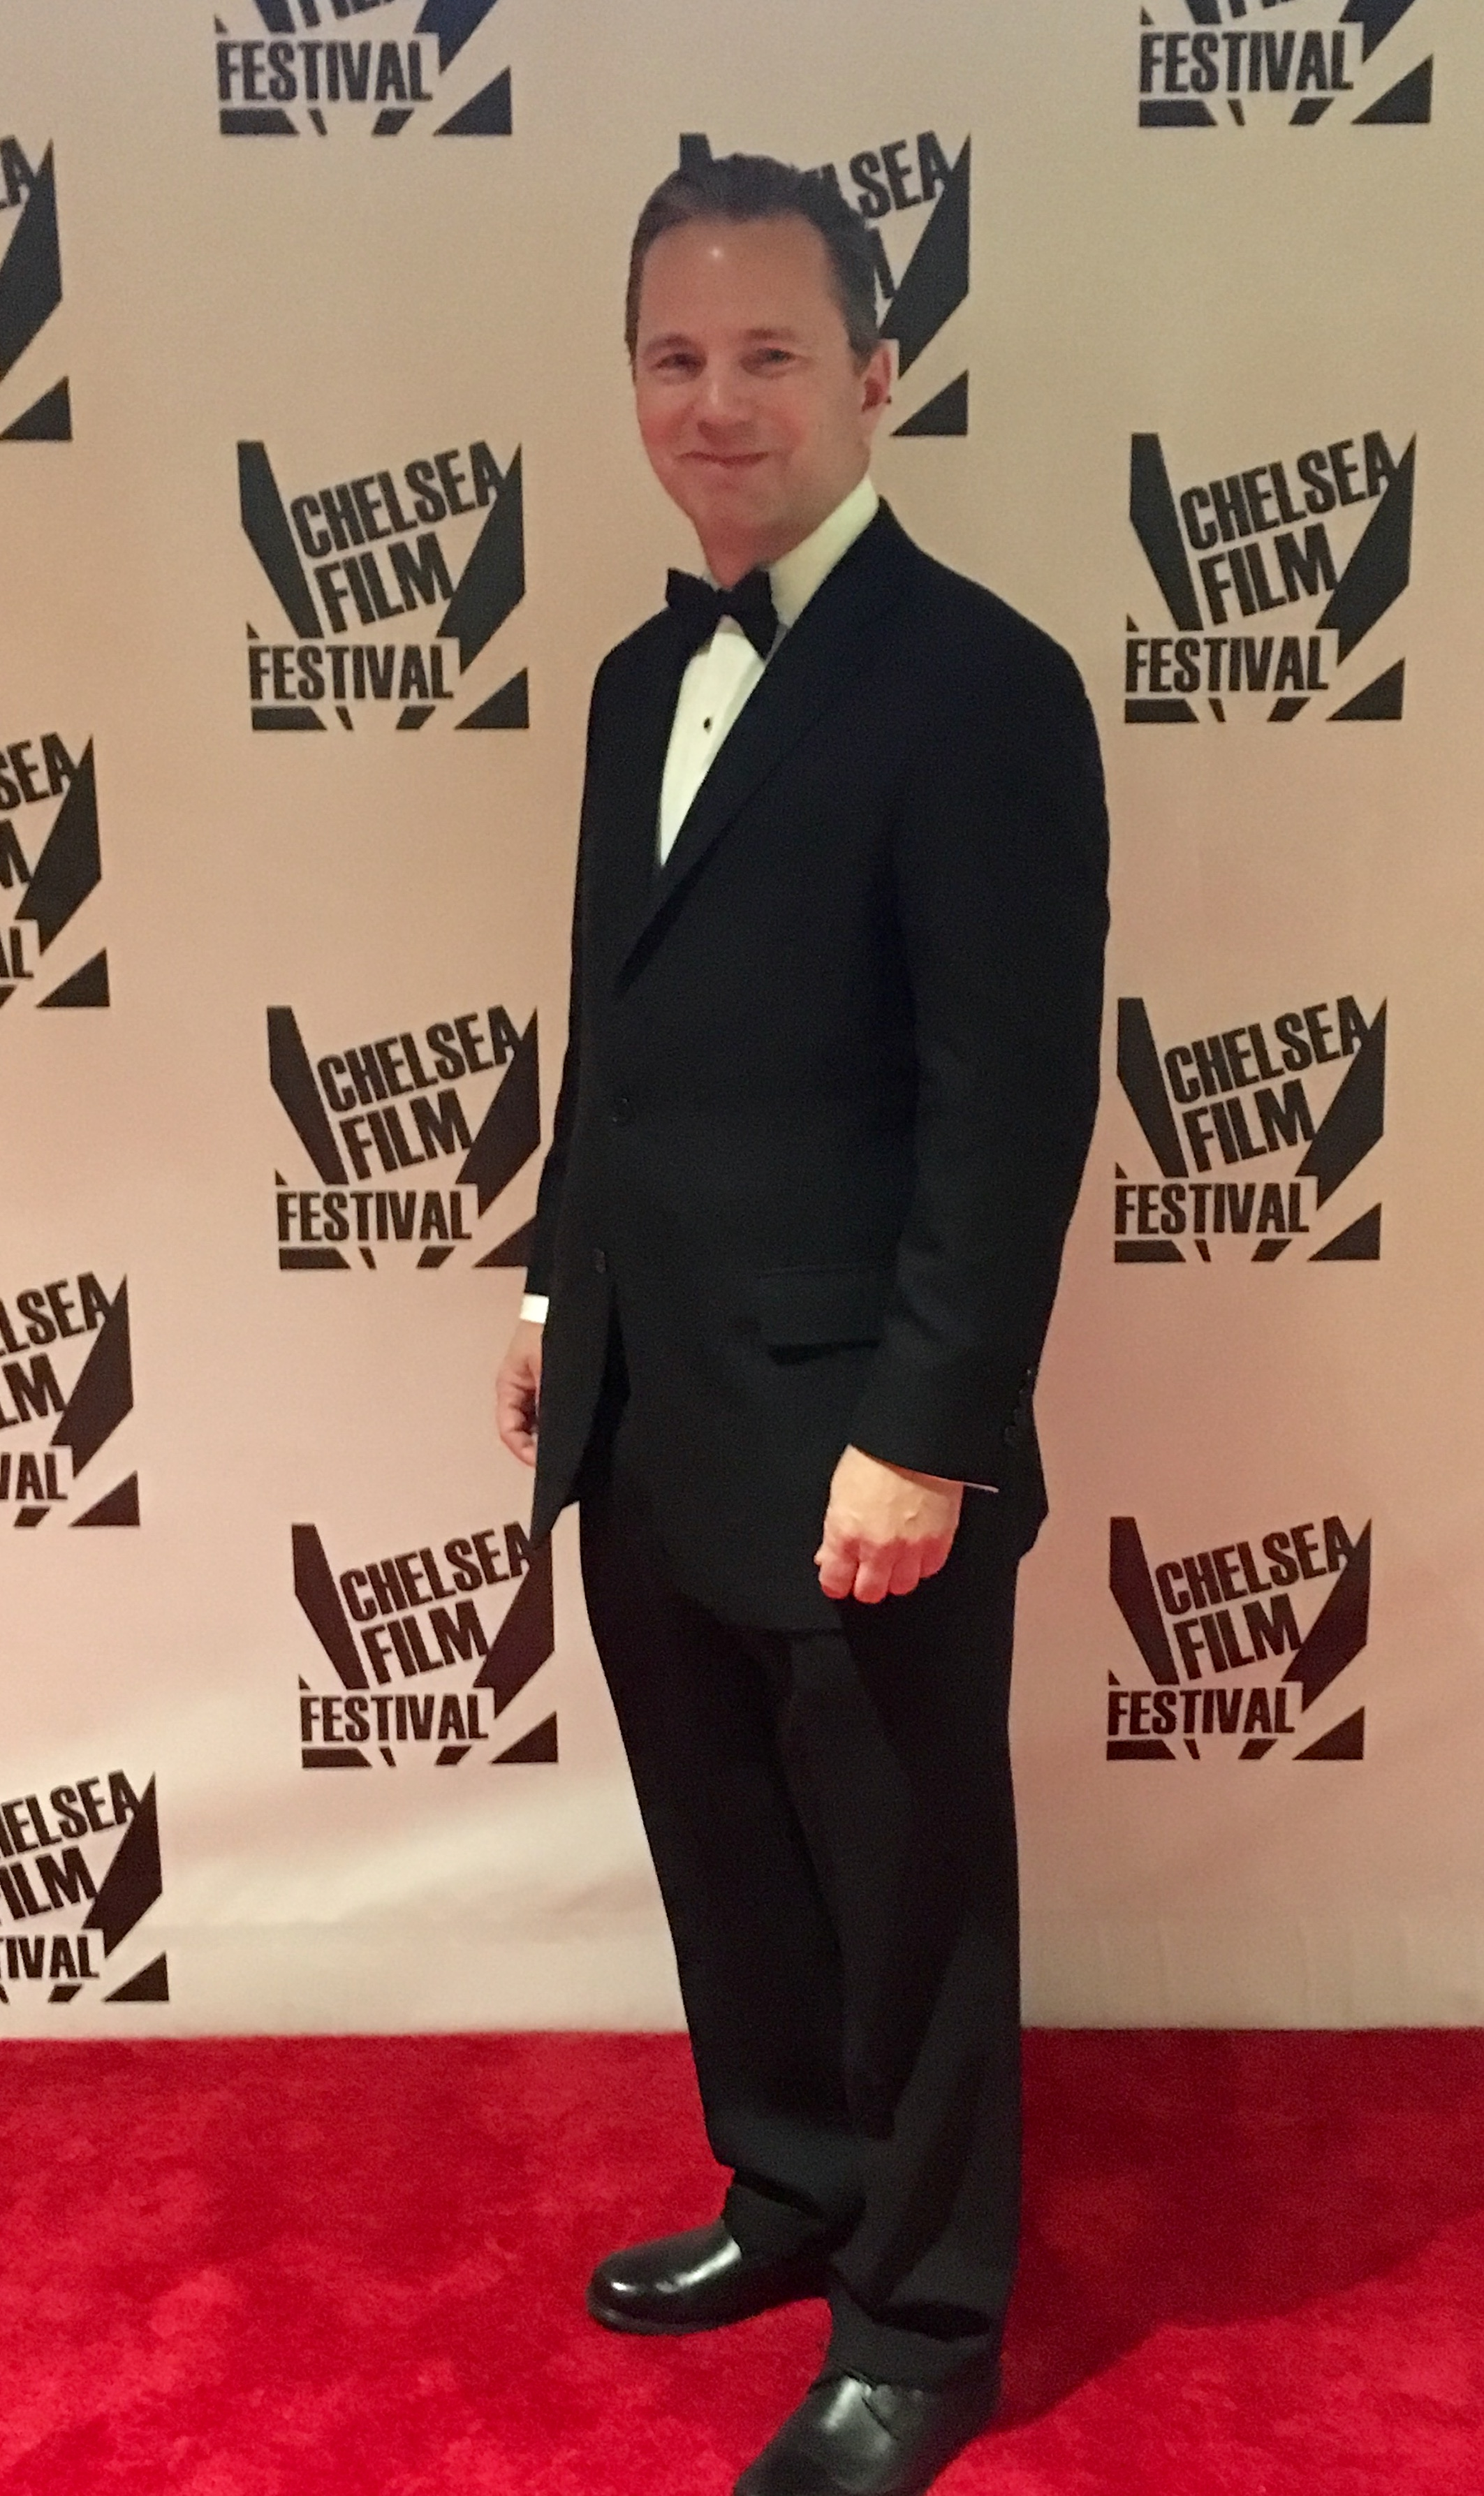 Director Brock Mullins in New York City at the 2018 Chelsea Film Festival in October with his feature film Return to Seattle.